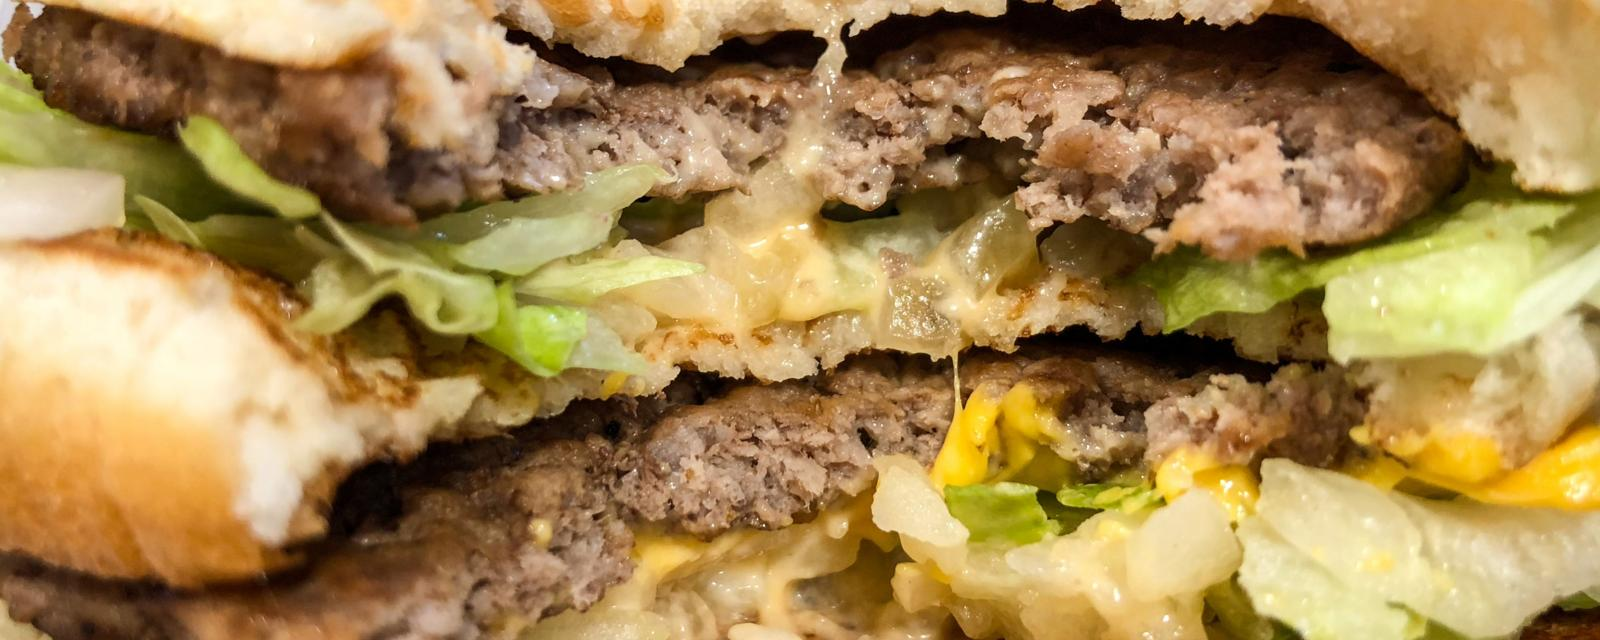 How can a fast food chain ever make money from a $1 burger? - BBC